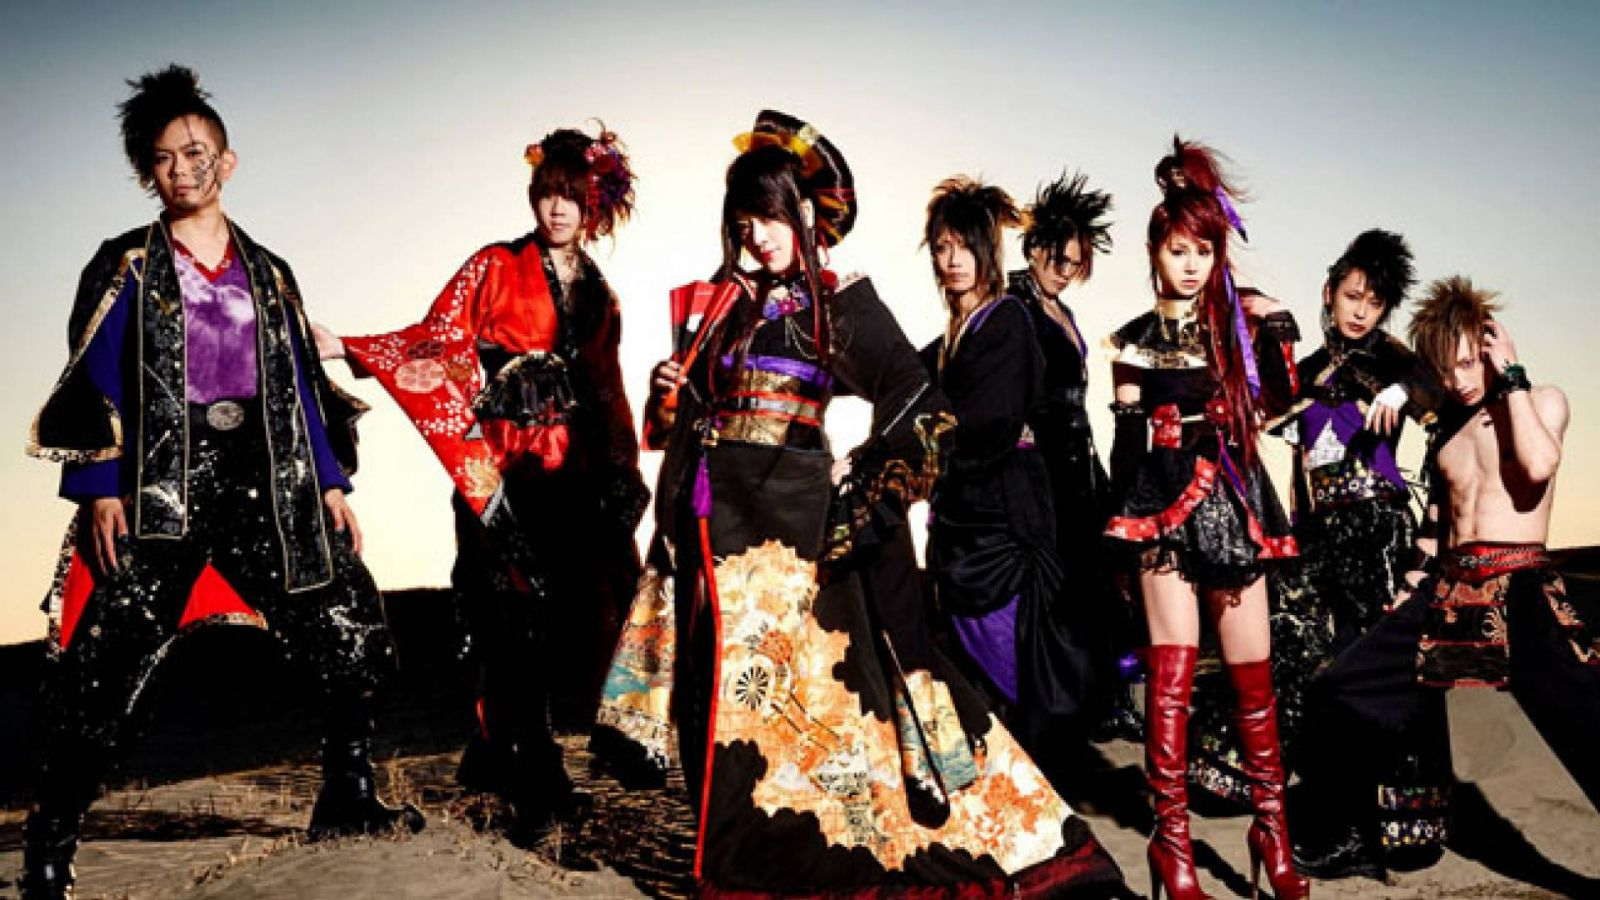 New Album from Wagakki Band © 2015 Avex Music Creative Inc. Provided by Cool Japan Music, Inc.